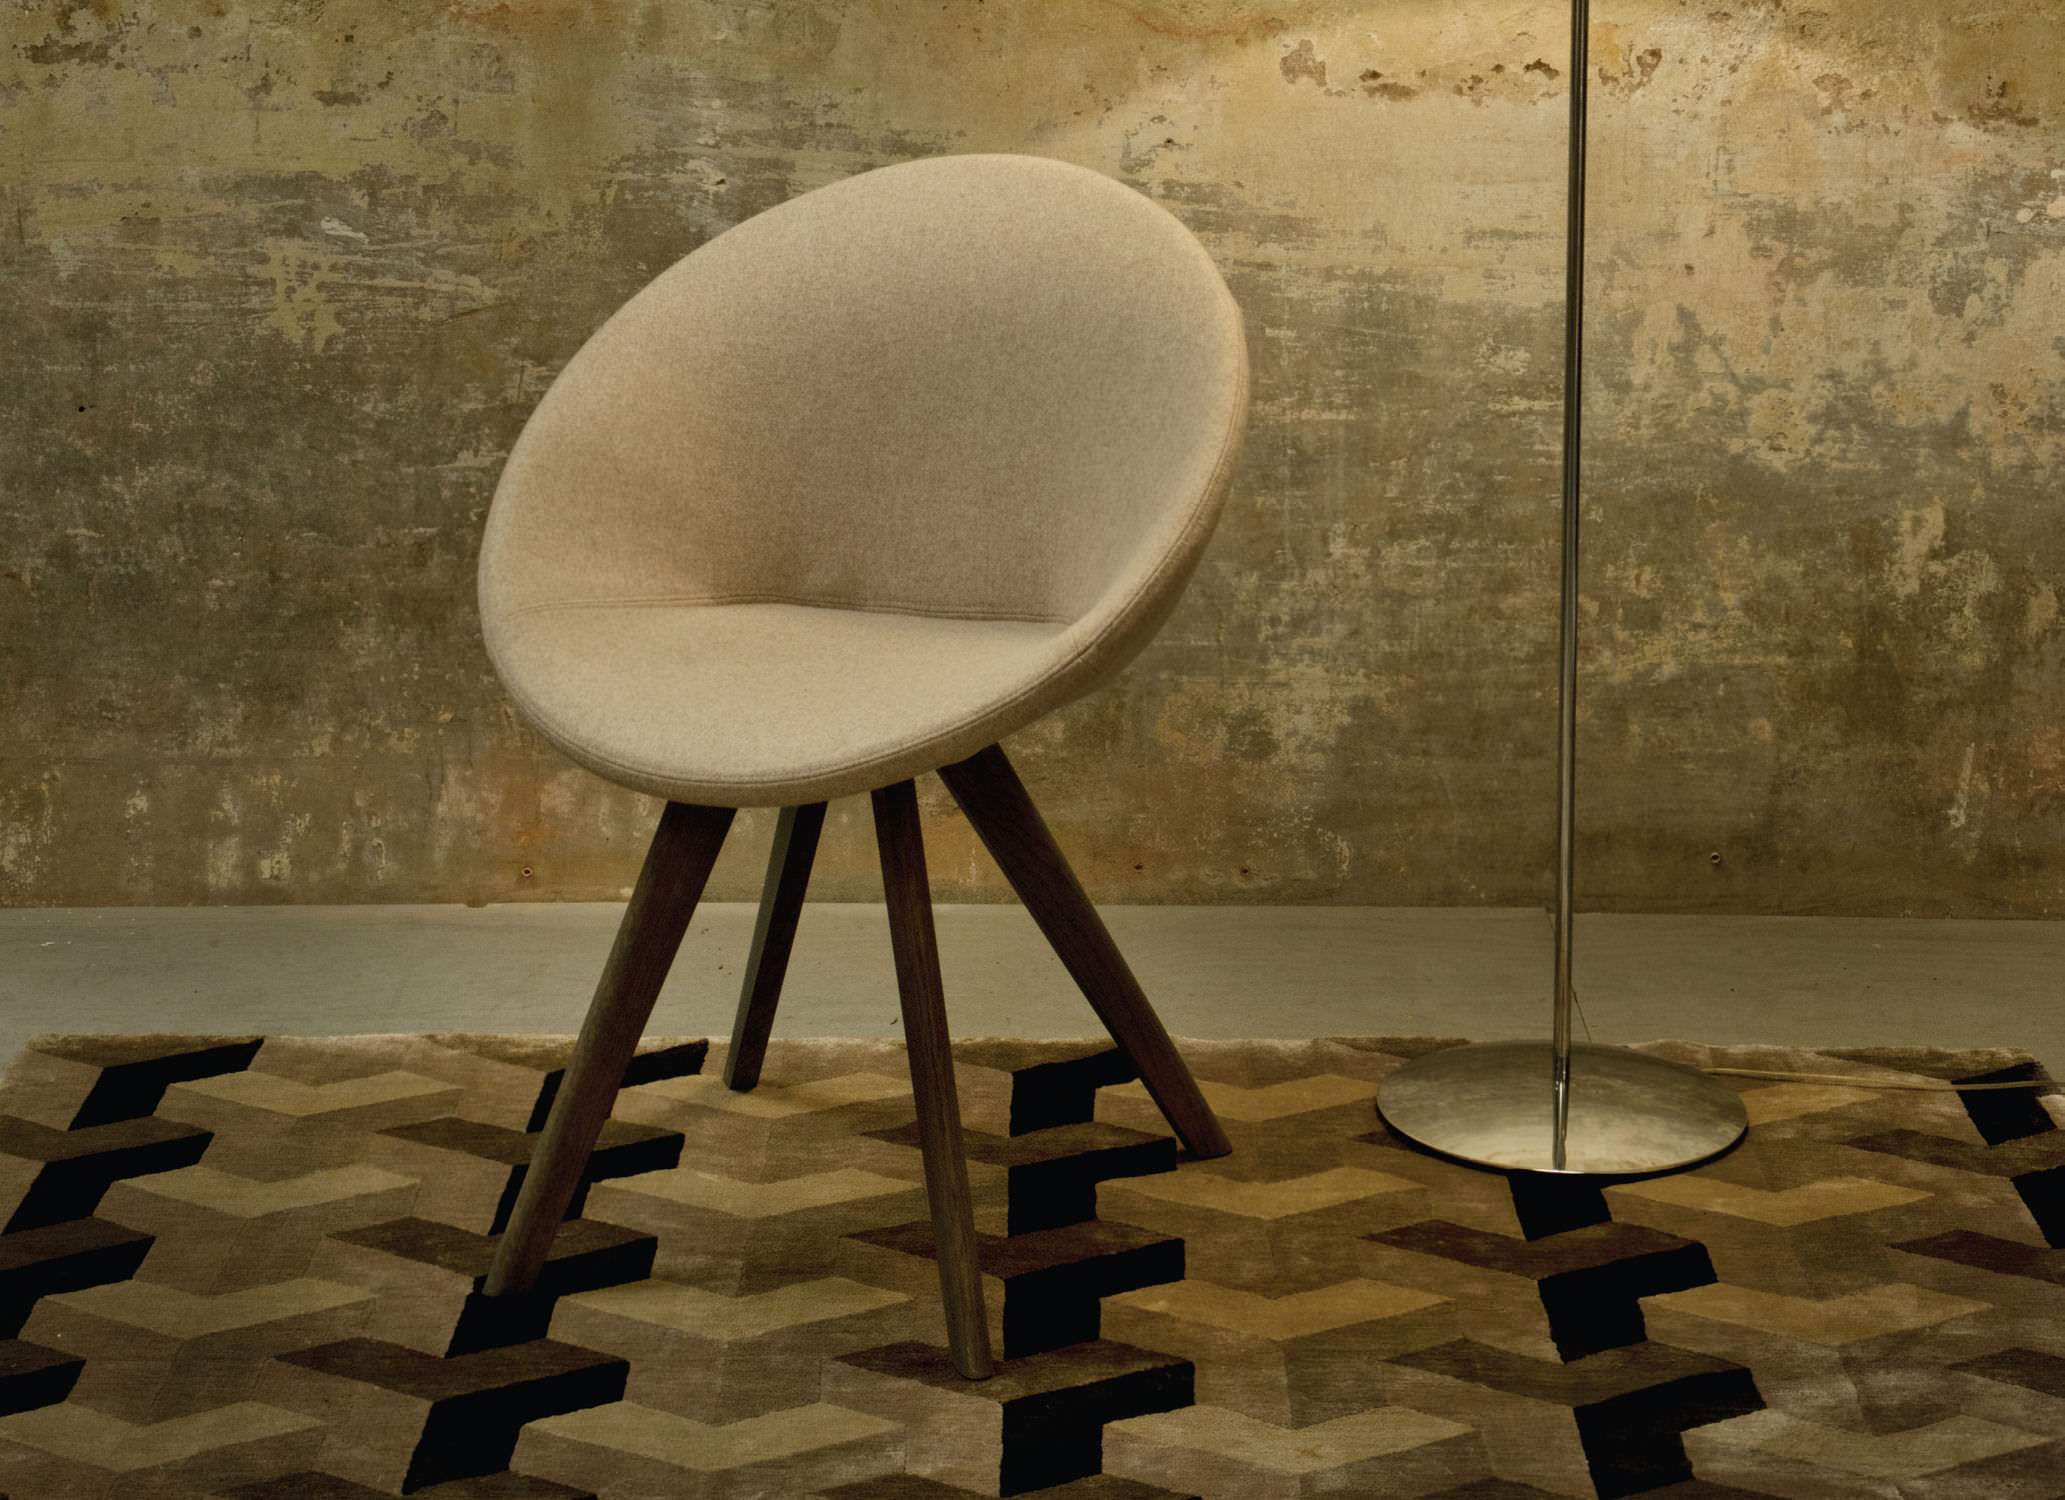 Contemporary Chair Upholstered Fabric Asiya By